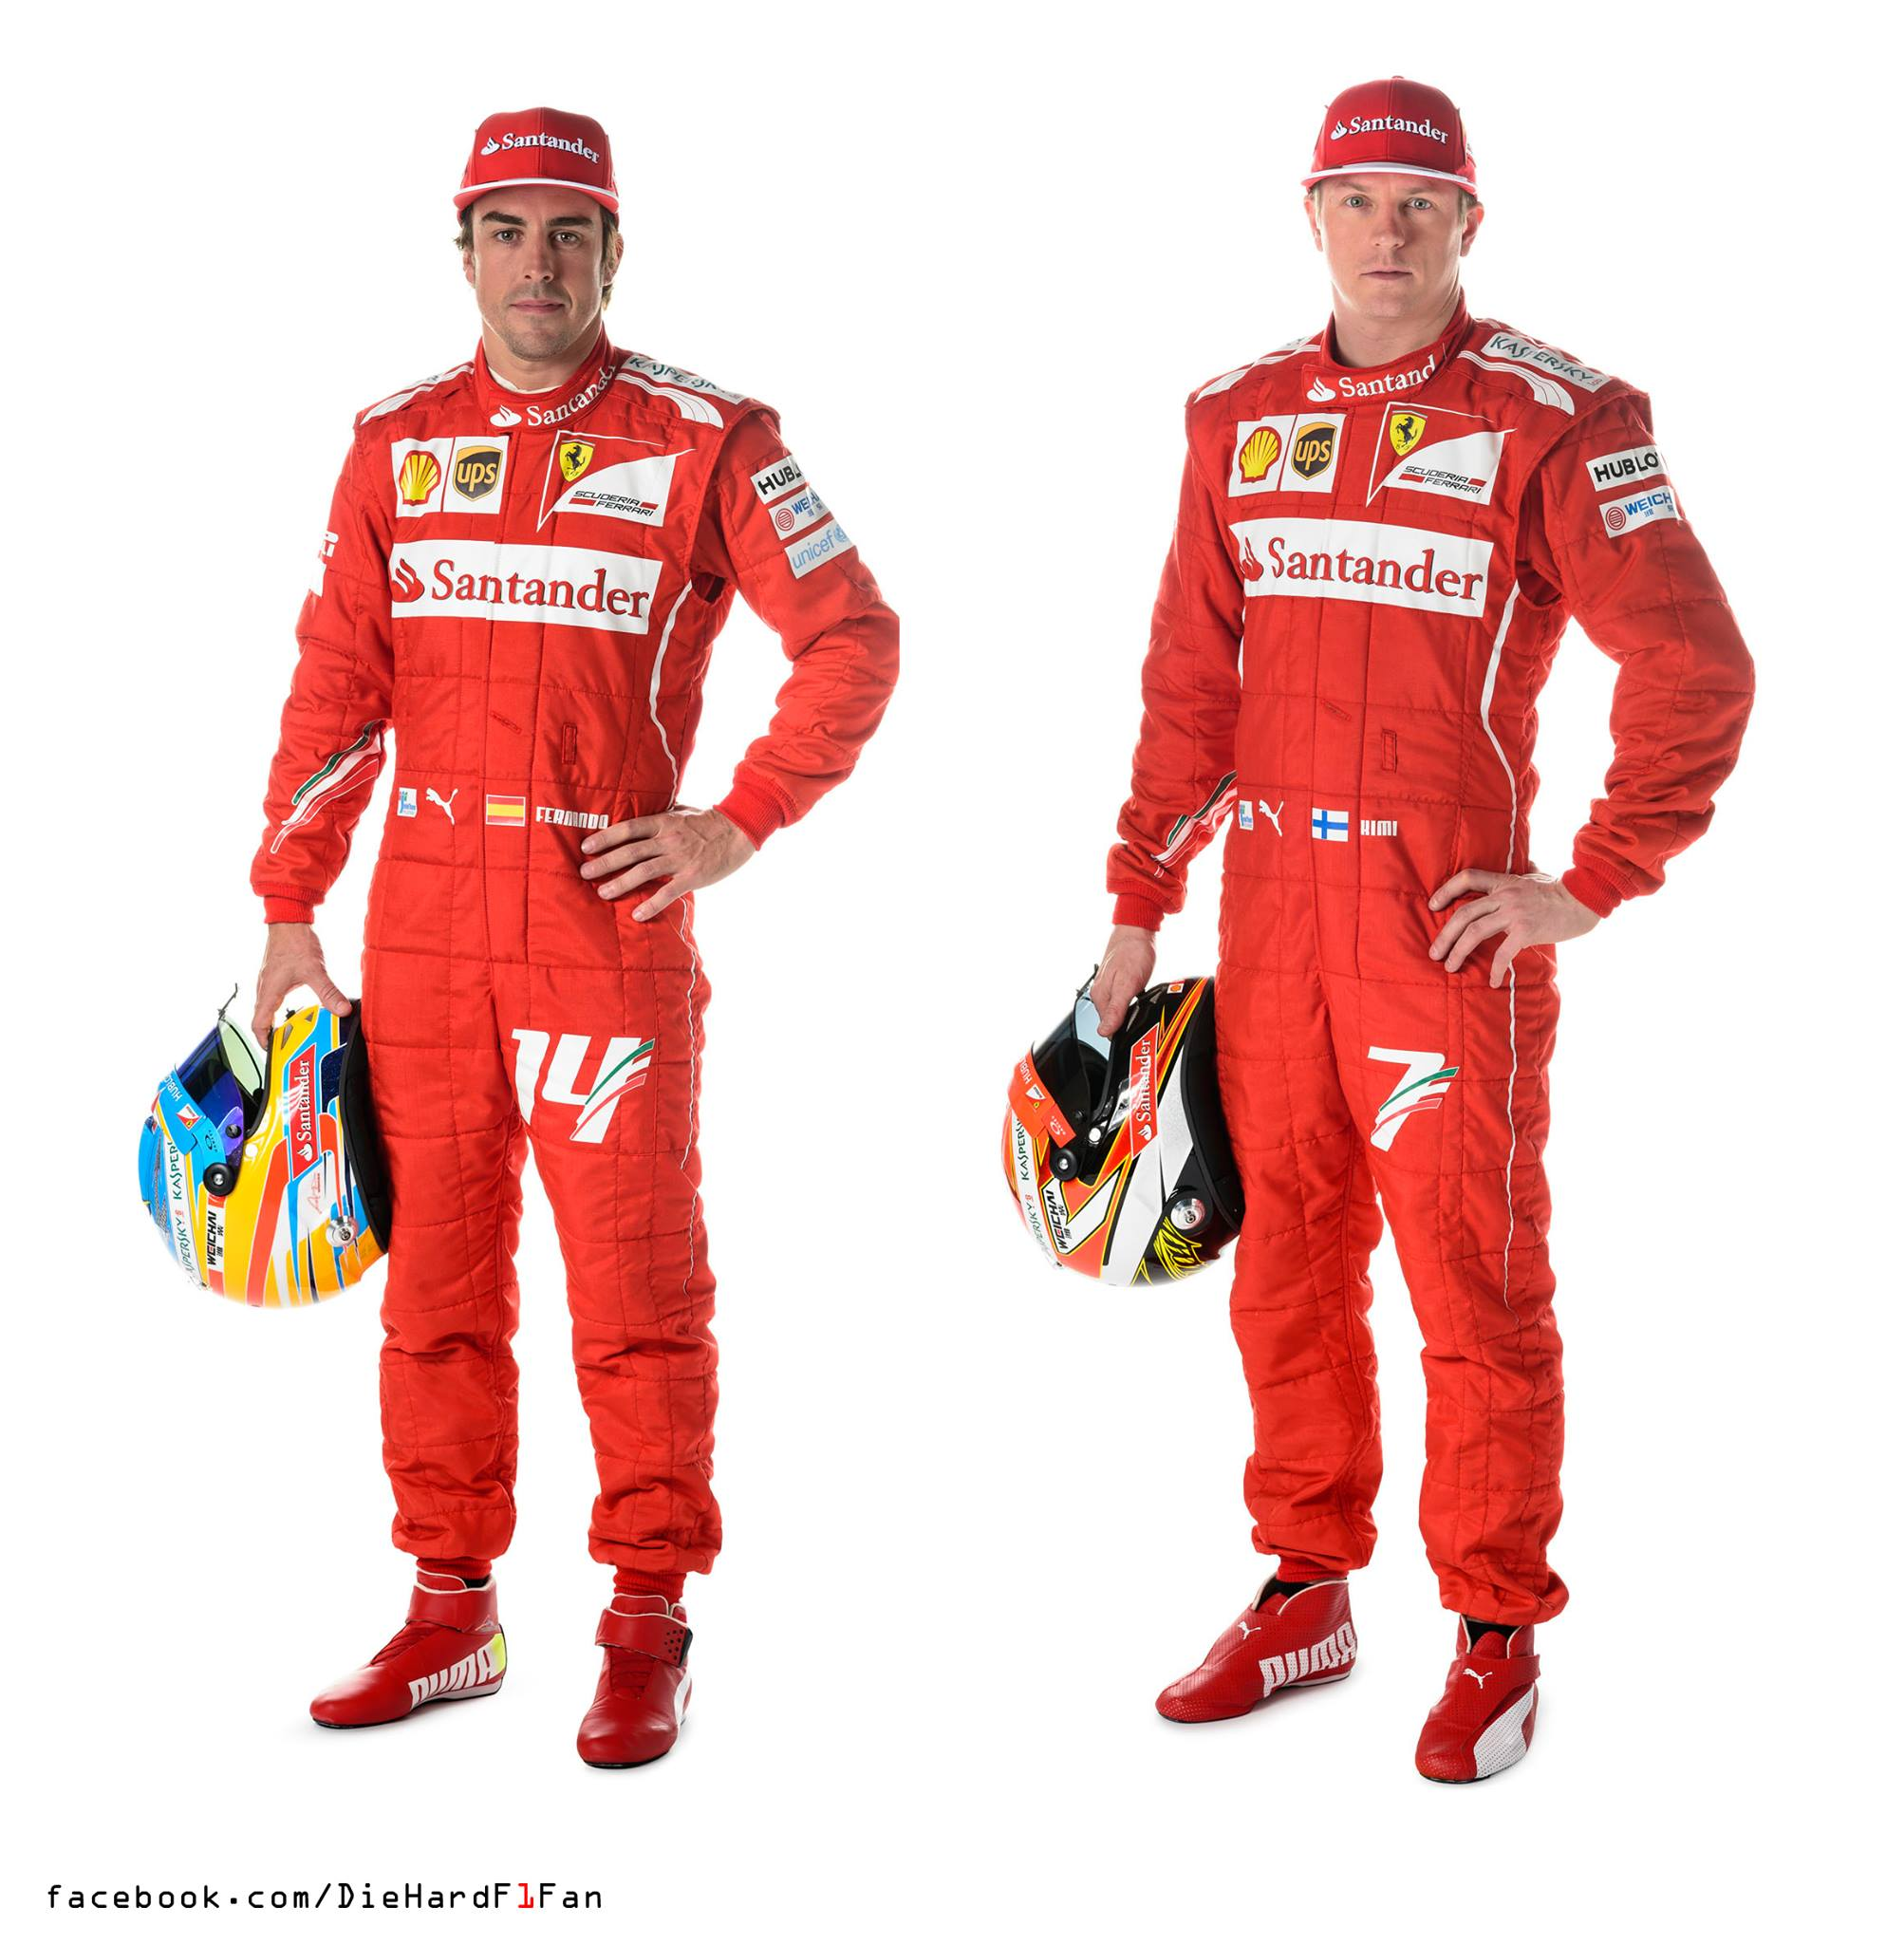 The Two Ferrari Drivers Fernando Alonso And Kimi